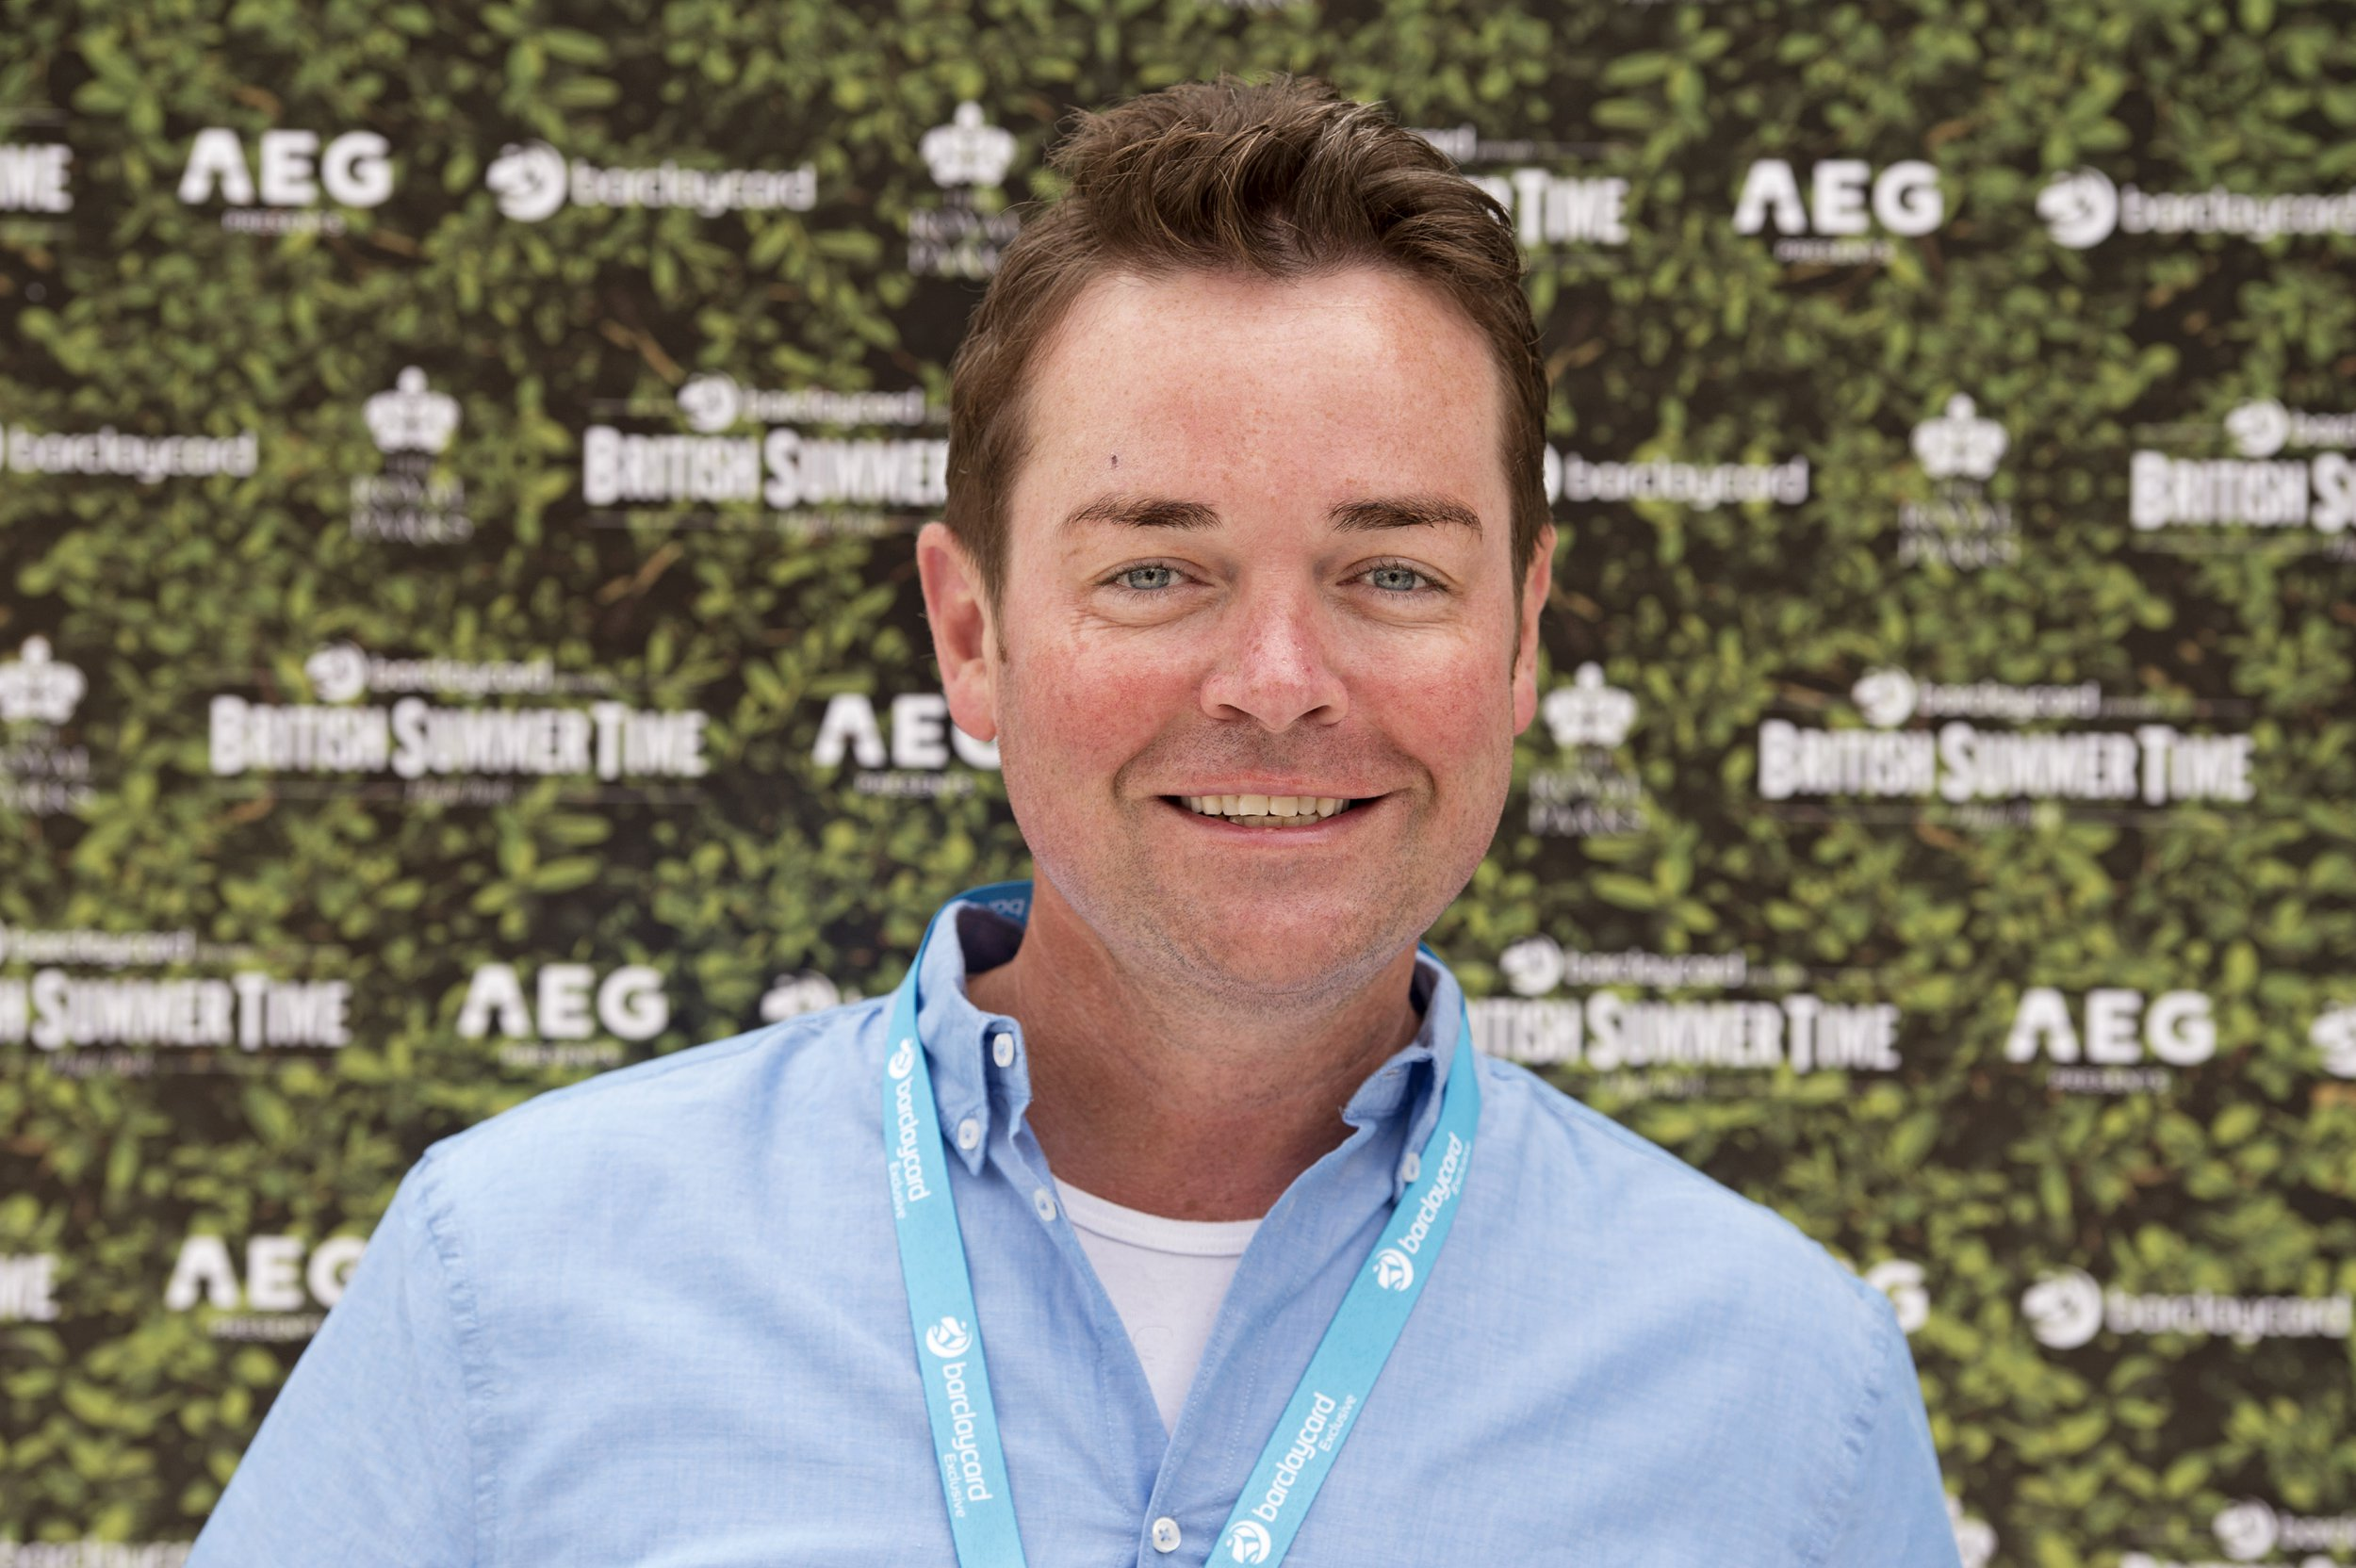 Britain's Got Talent's Stephen Mulhern missed filming for 'first time in 12 years' during show's auditions round